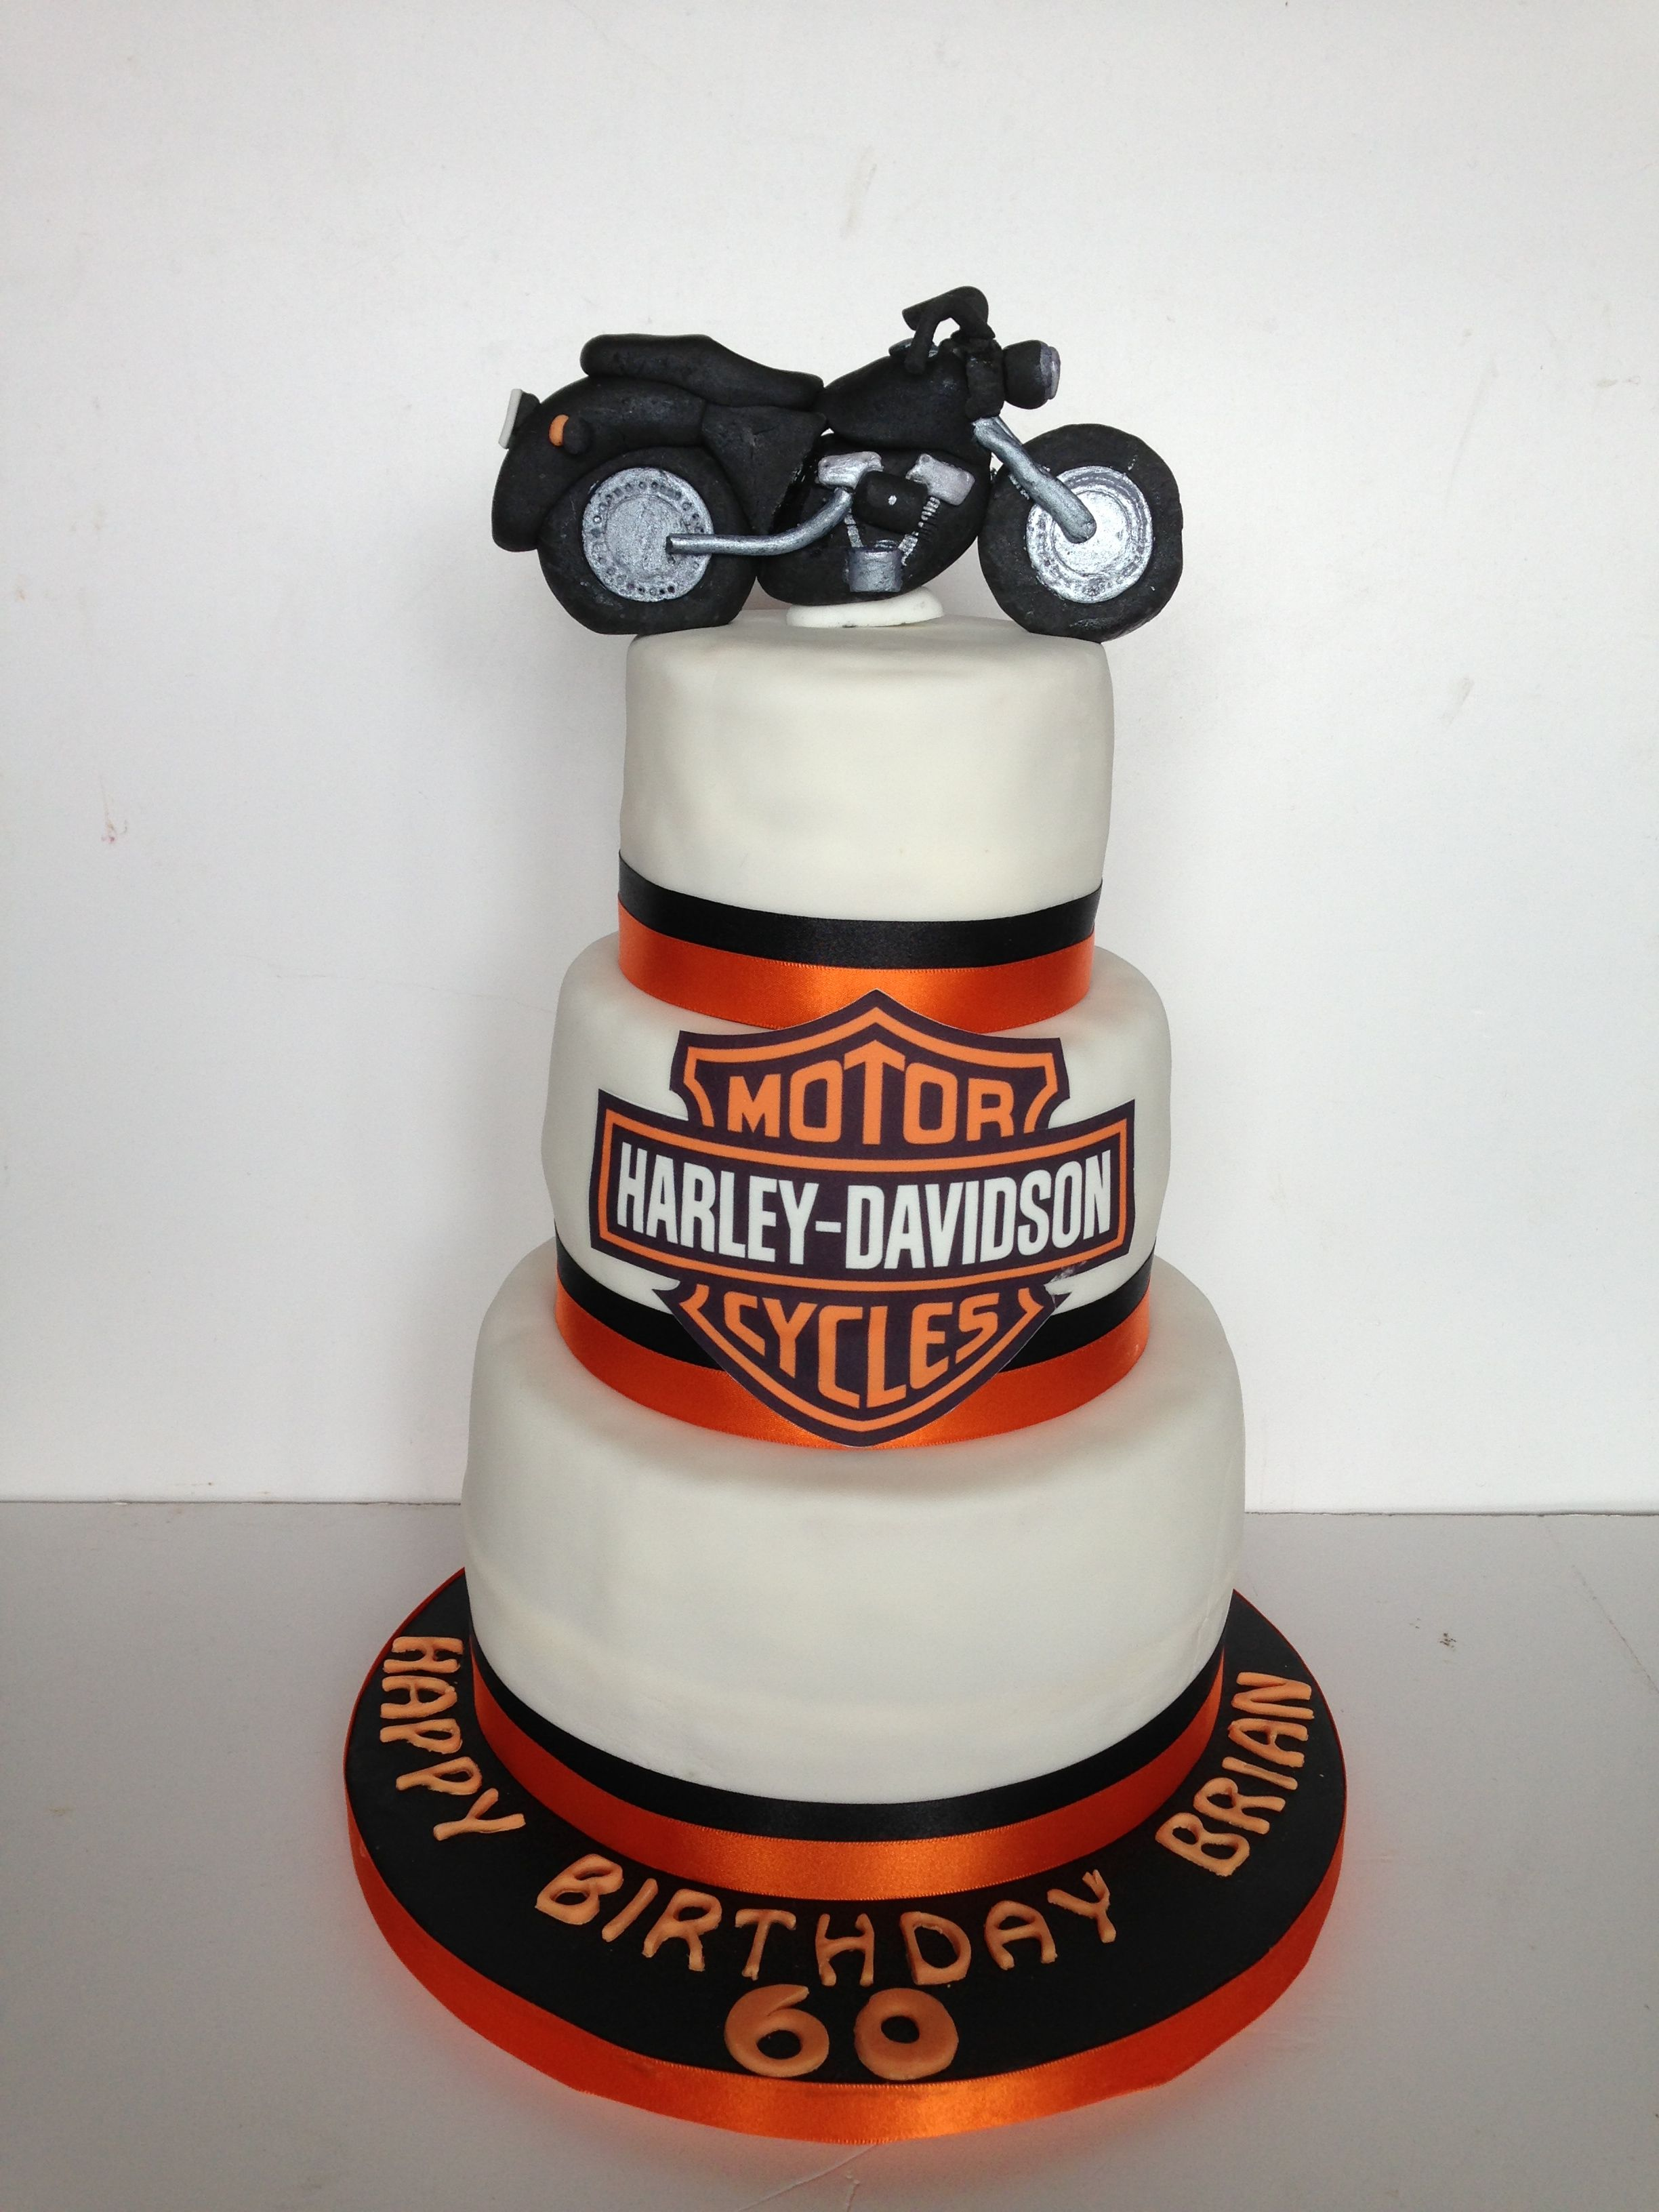 Astounding Harley Davidson Themed 60Th Birthday Cake With Images 60Th Funny Birthday Cards Online Necthendildamsfinfo